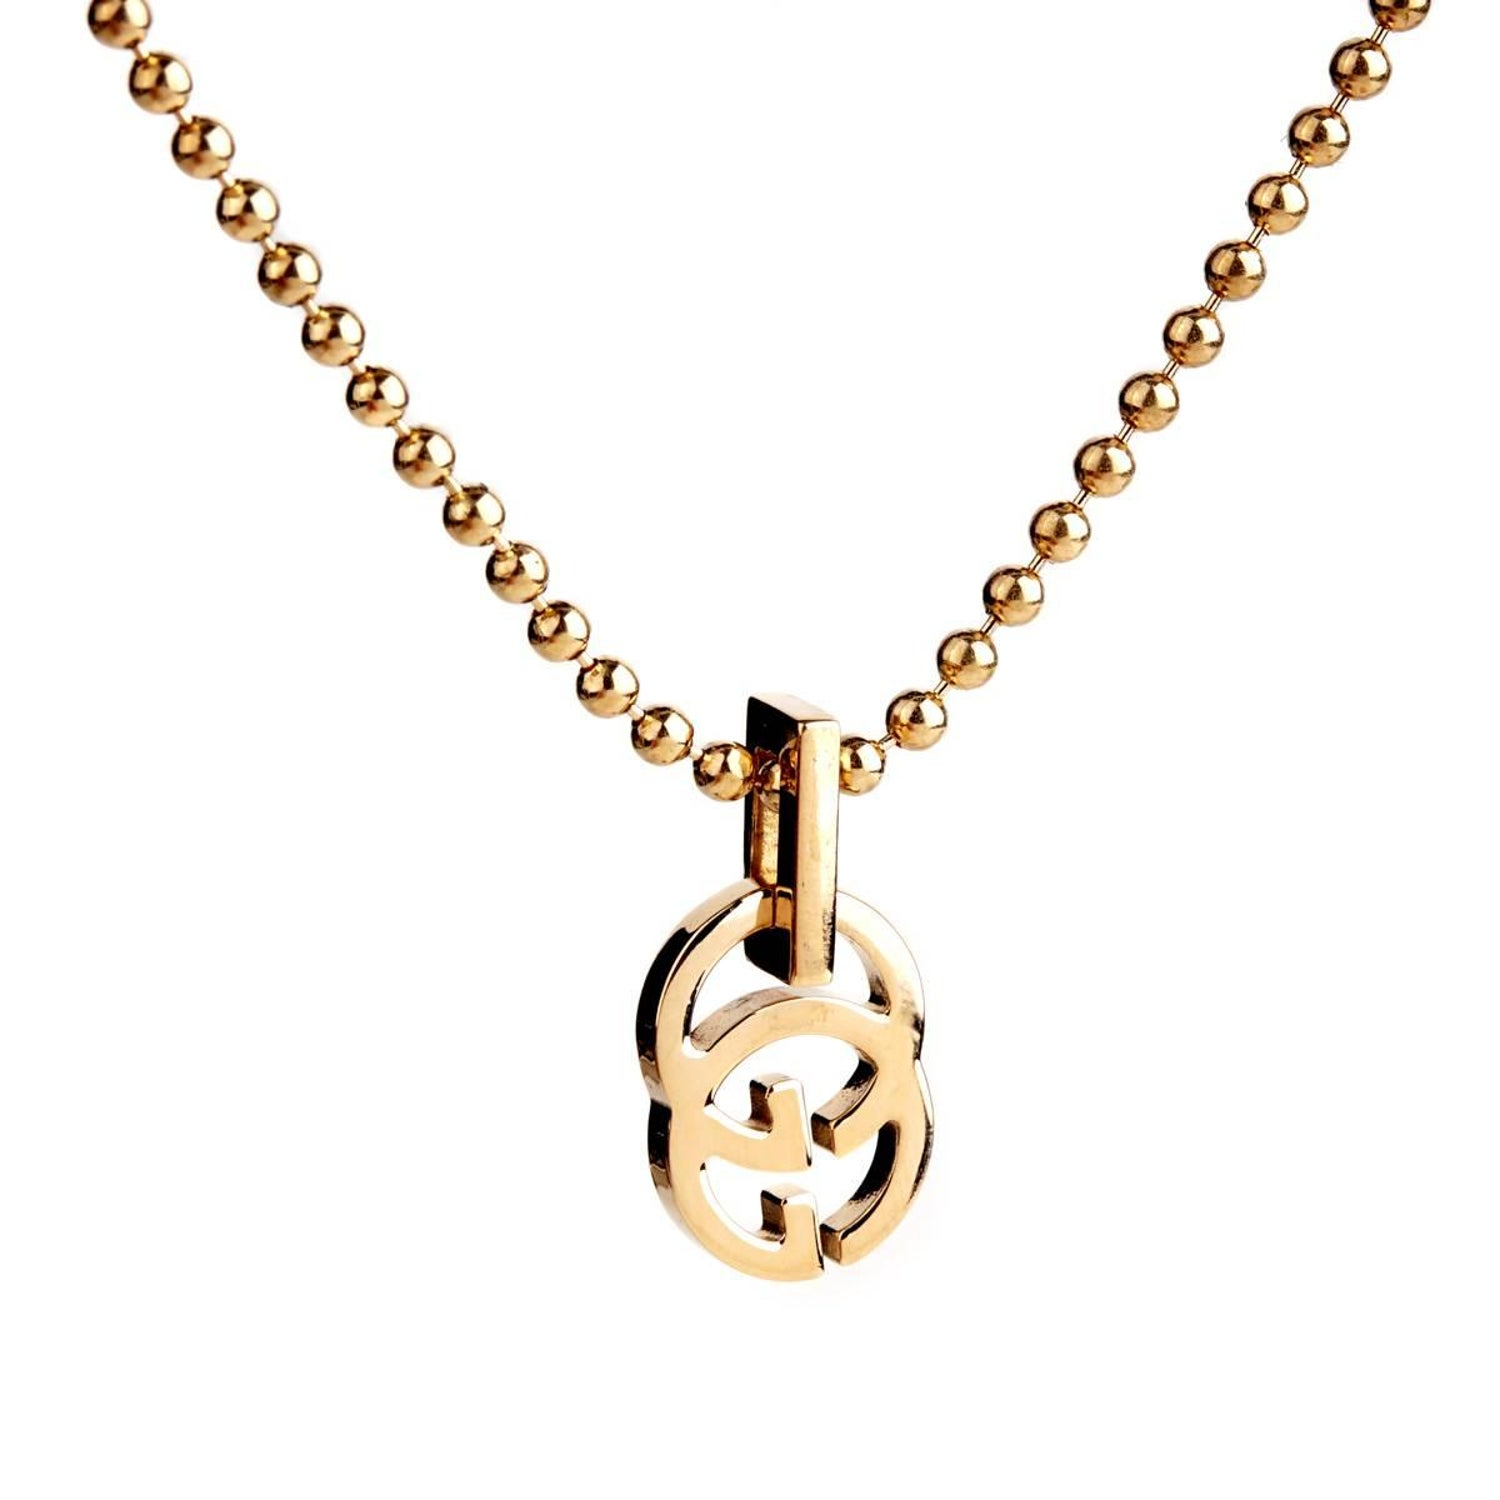 de0a0325719 Gucci Running G Gold Necklace at 1stdibs